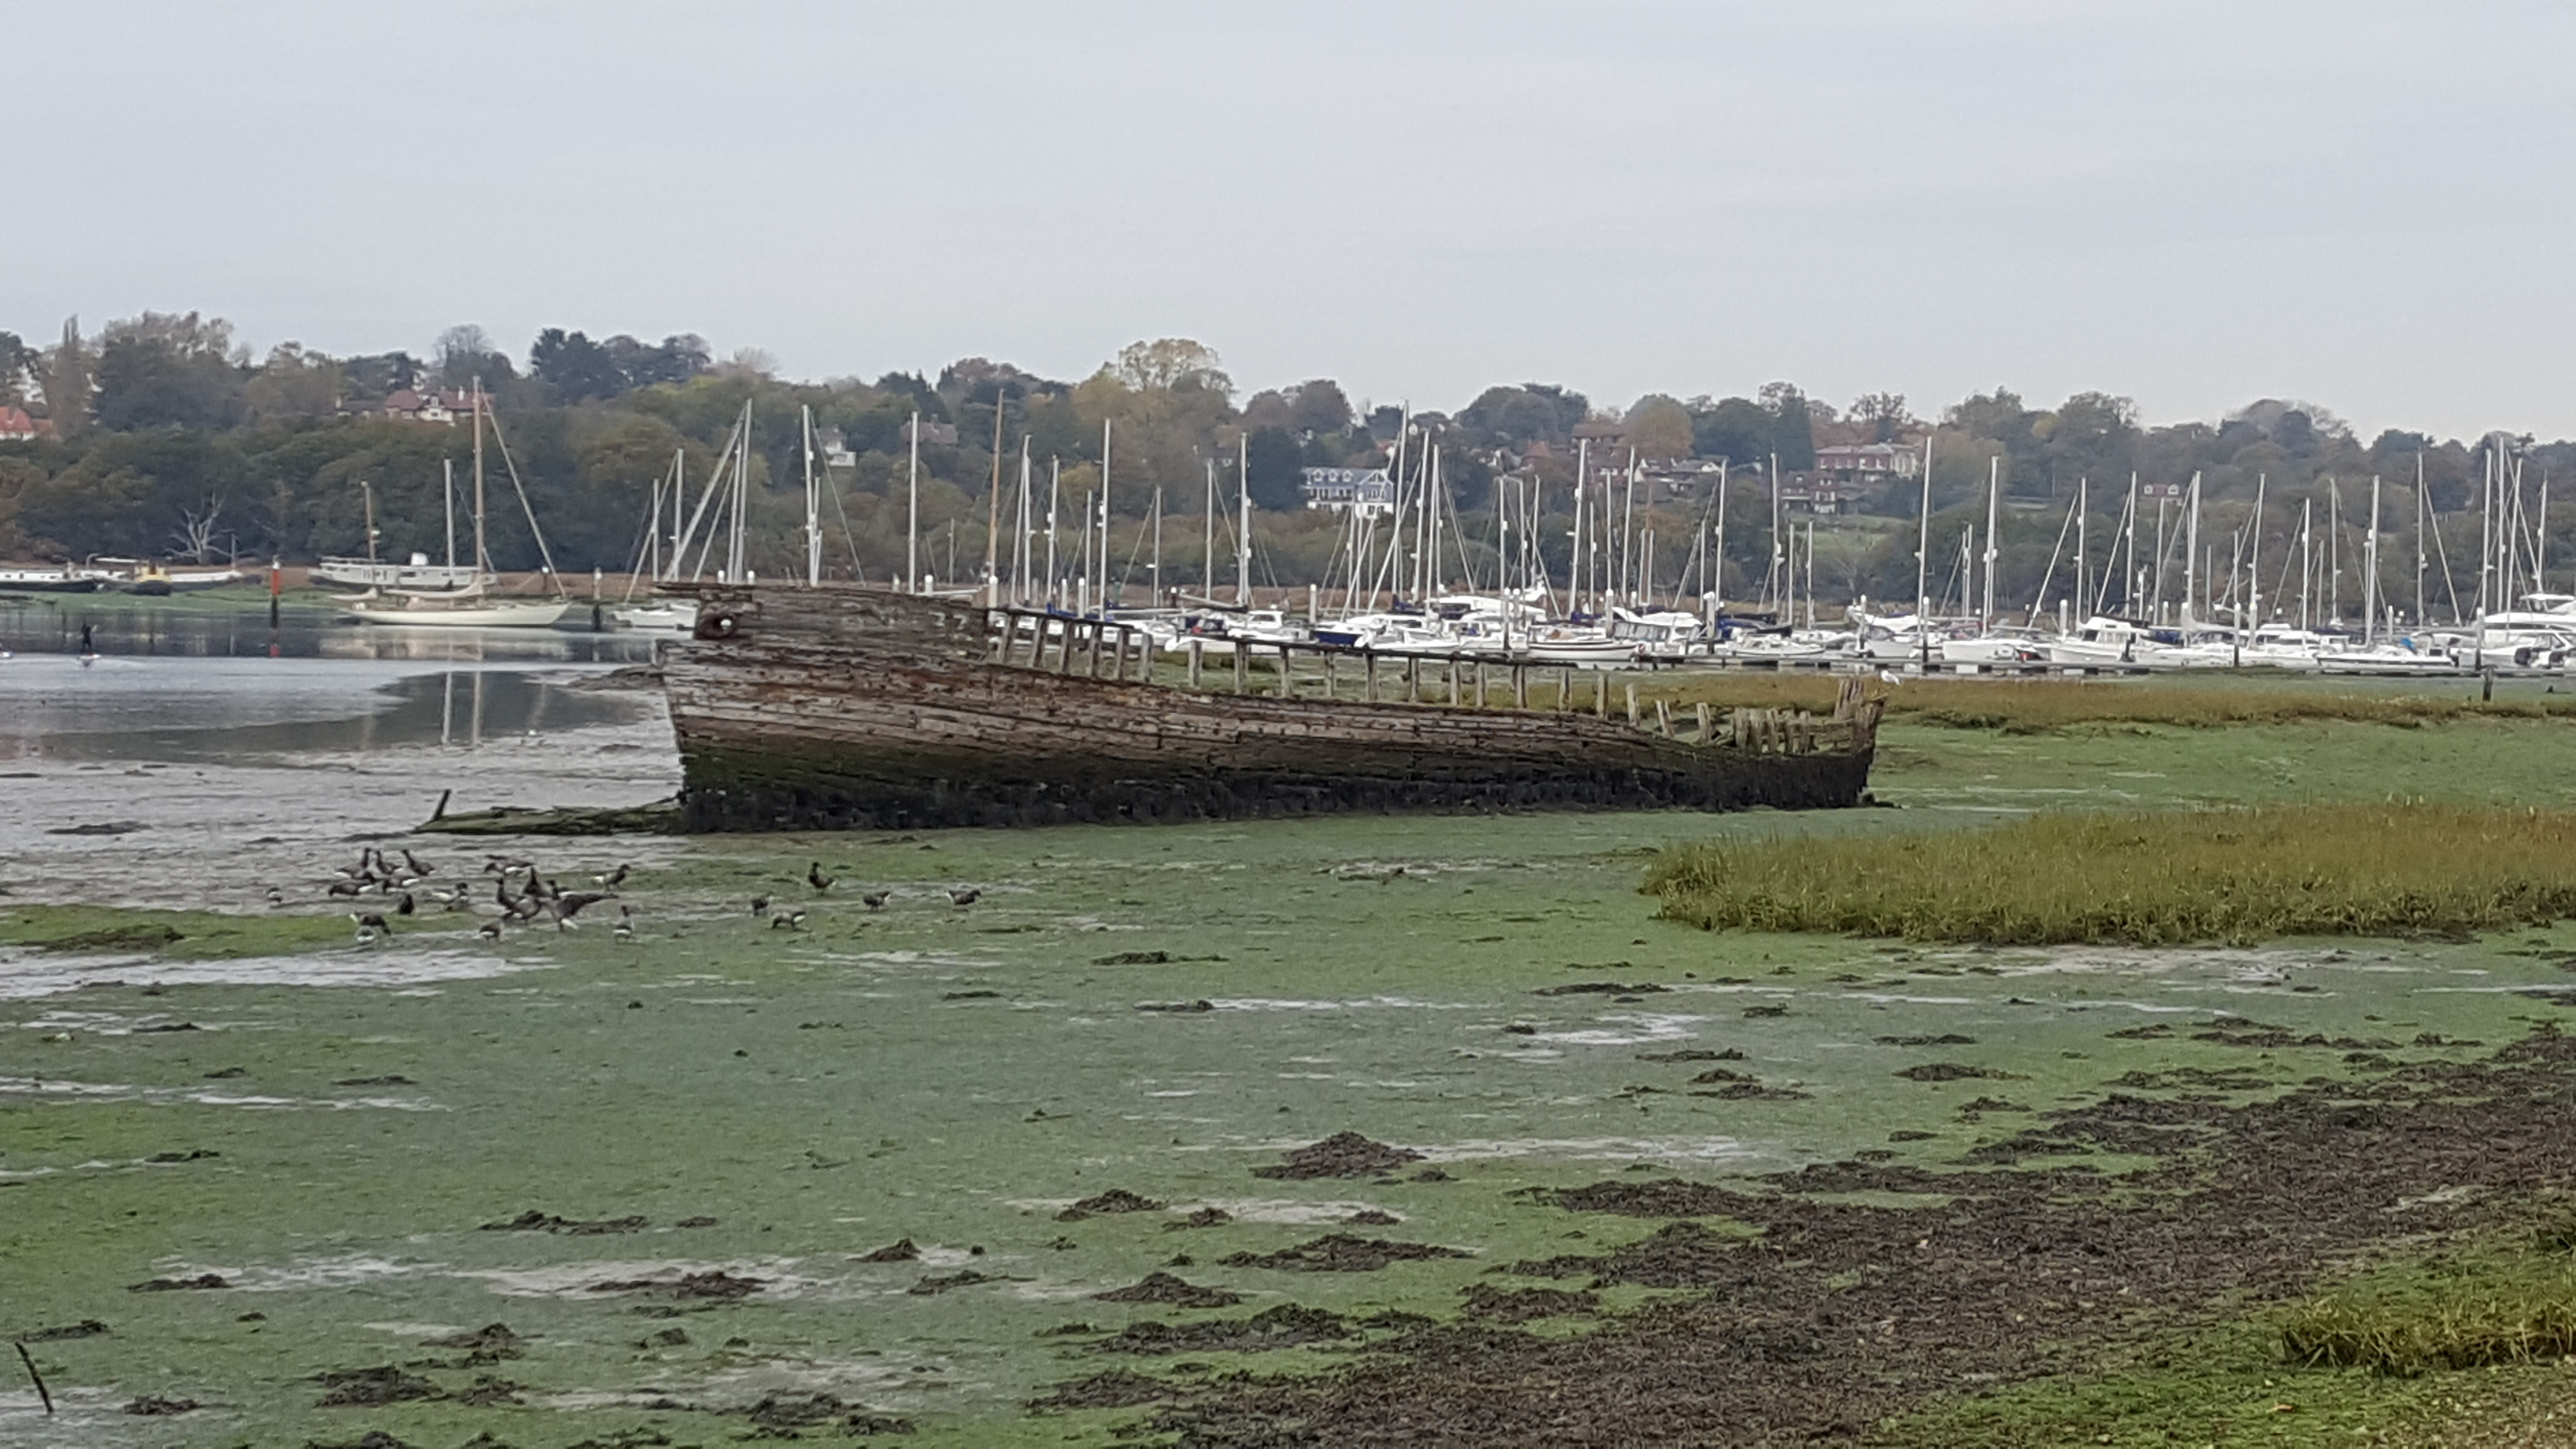 The carcass of a boat on the shore of the River Hamble taken from the Warsash side, with Mercury Marina in the background